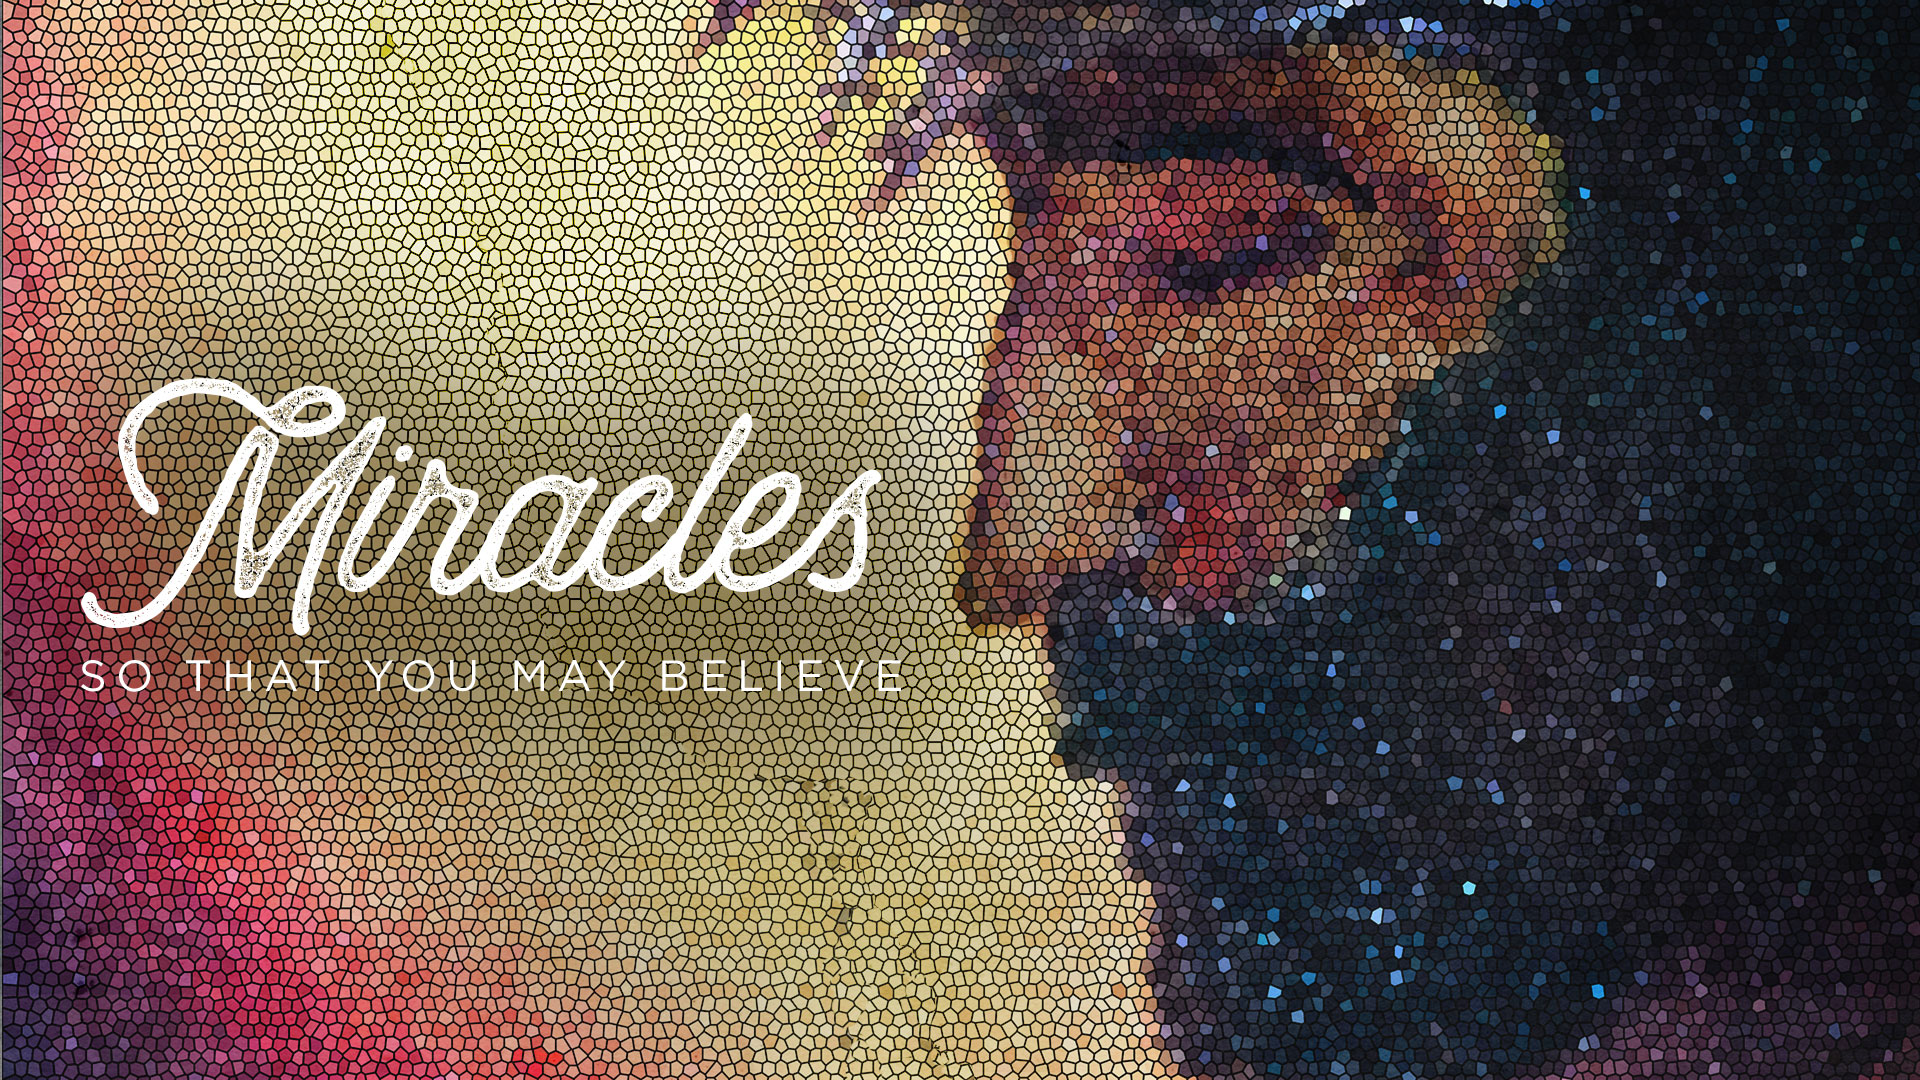 Miracles_PC_Wallpaper